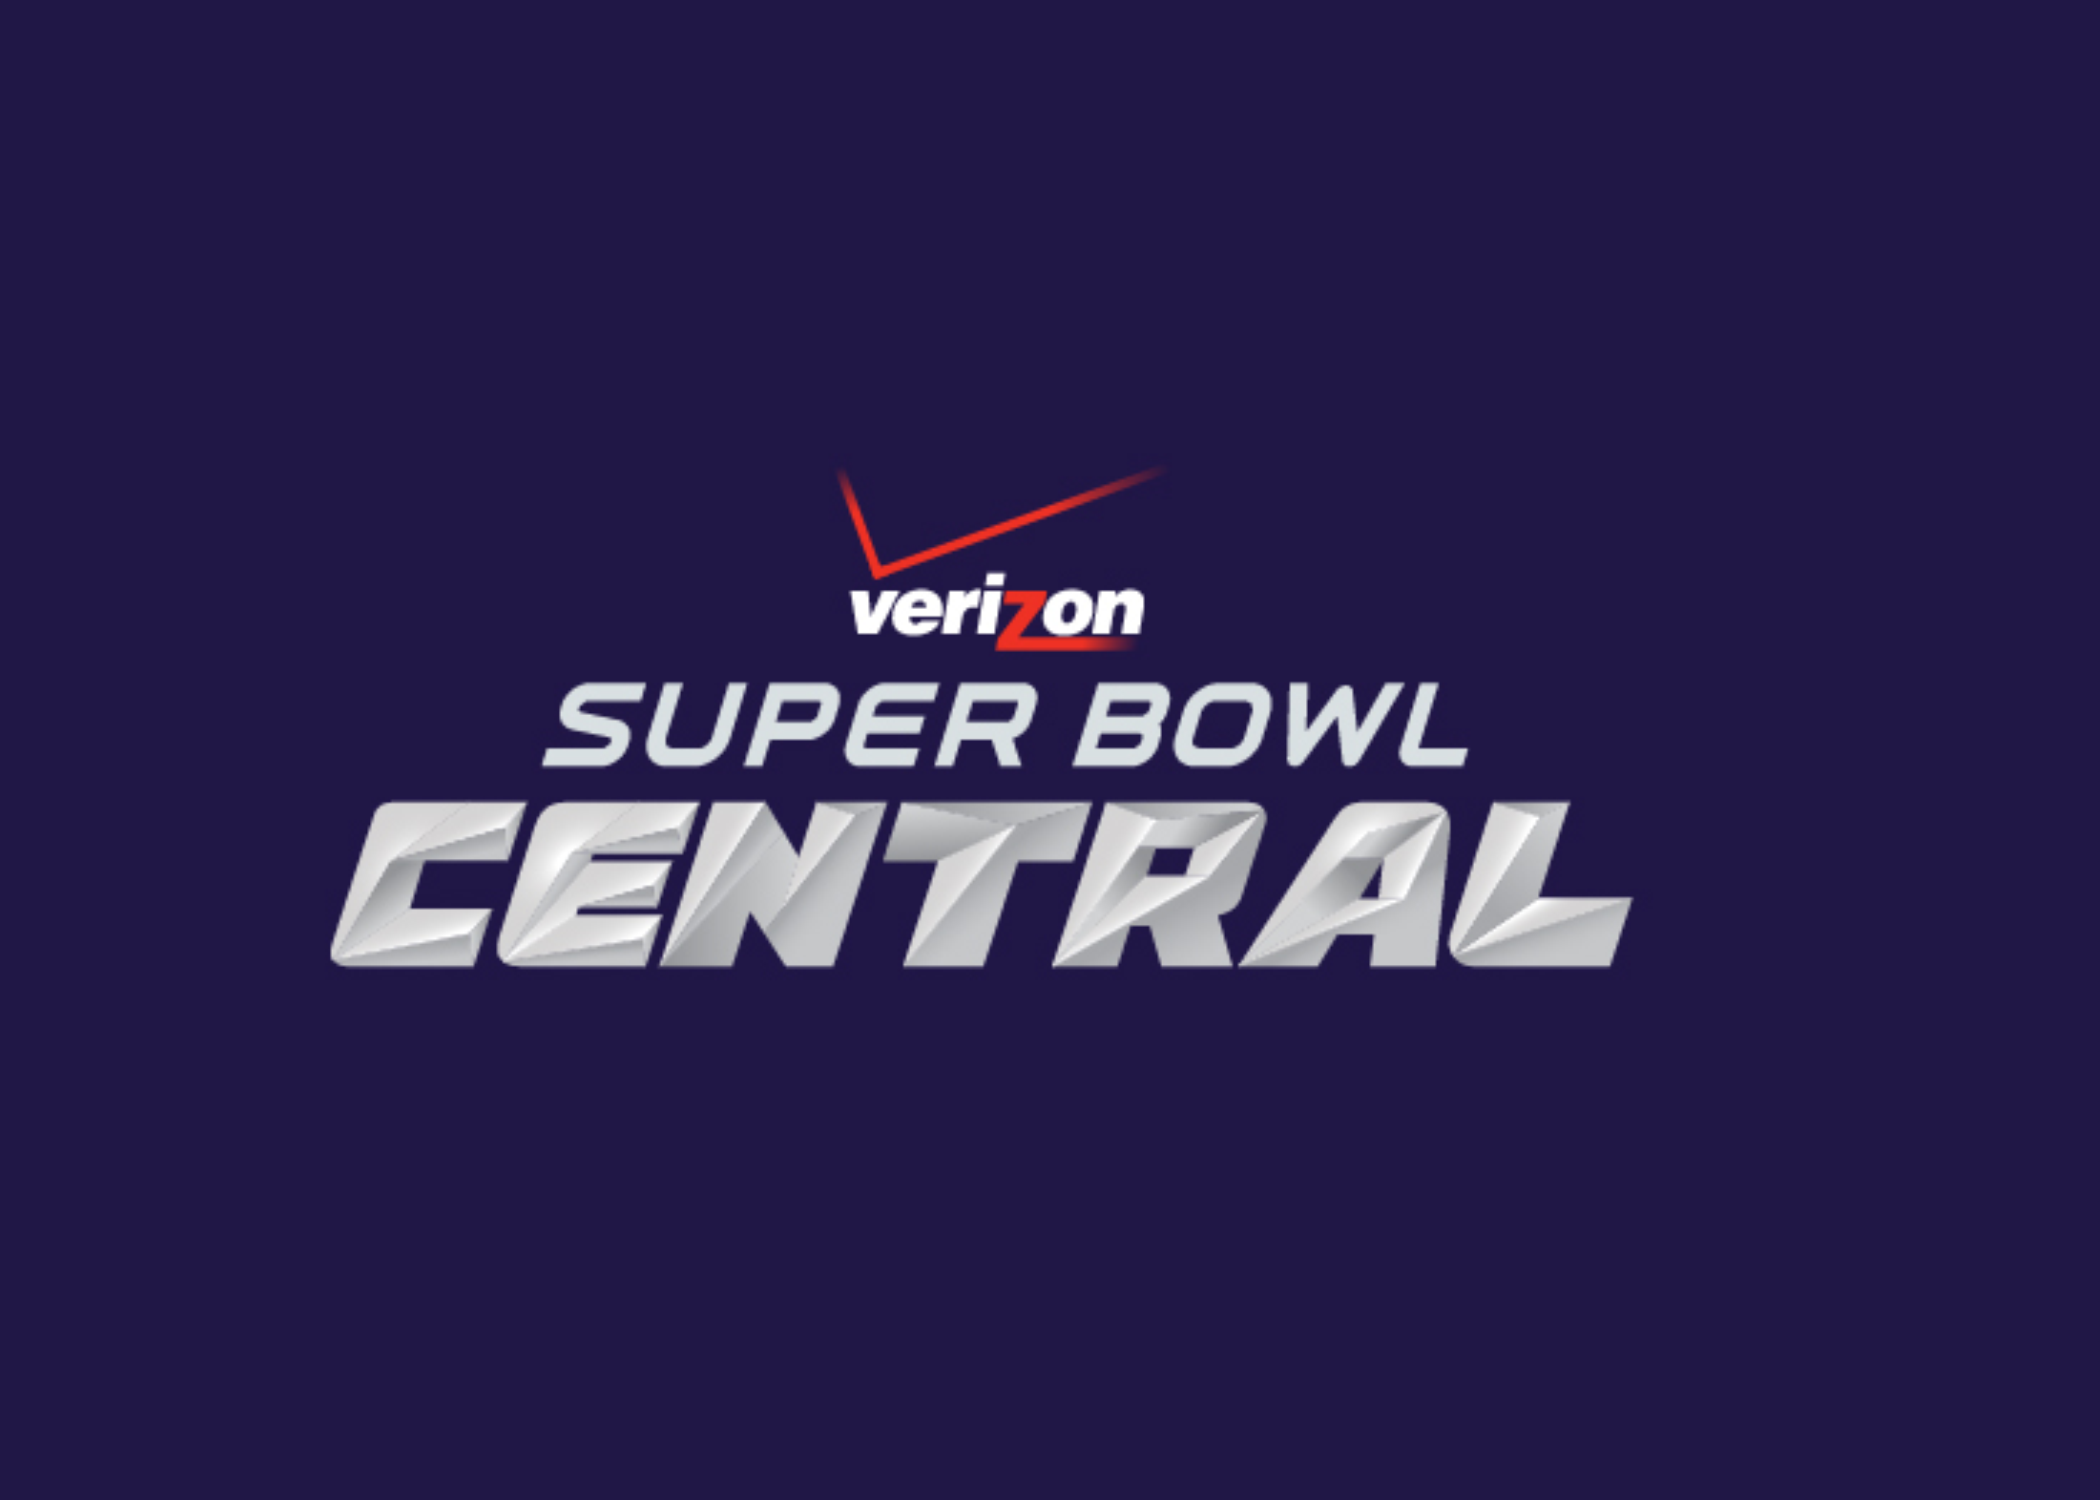 Verizon Super Bowl Central Super Bowl Party